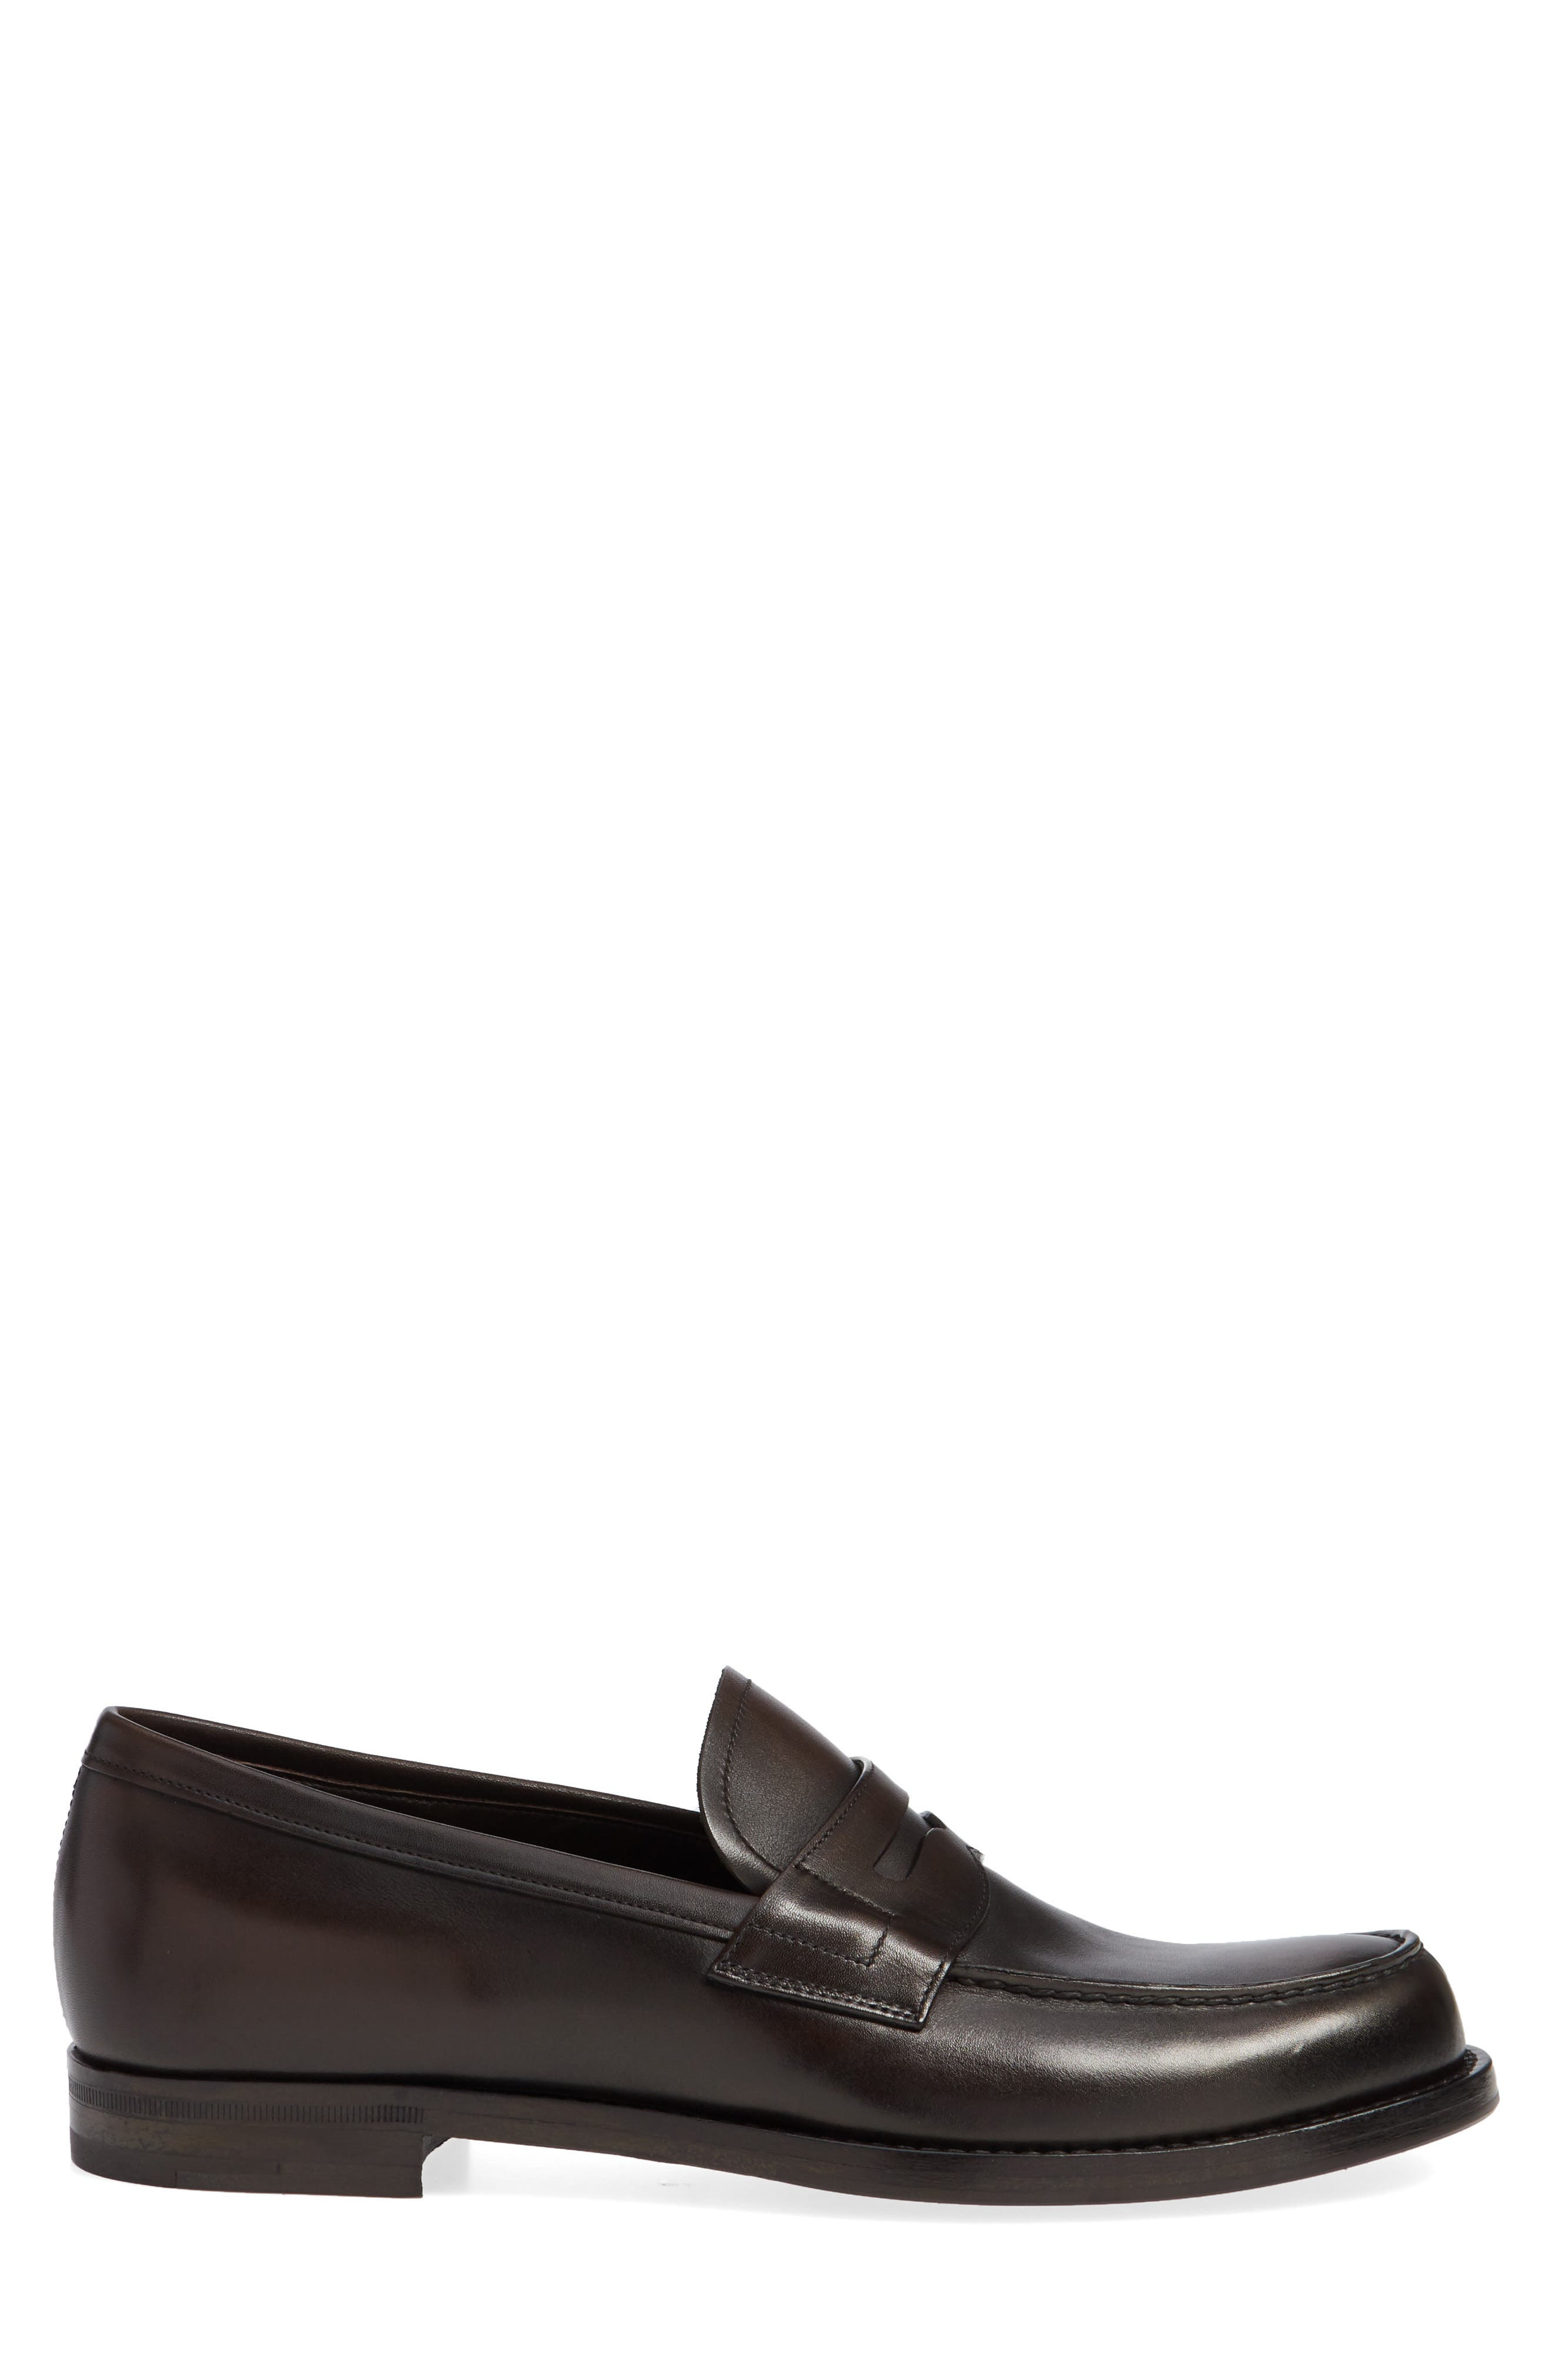 Penny Loafer,                             Alternate thumbnail 6, color,                             Moro Brown